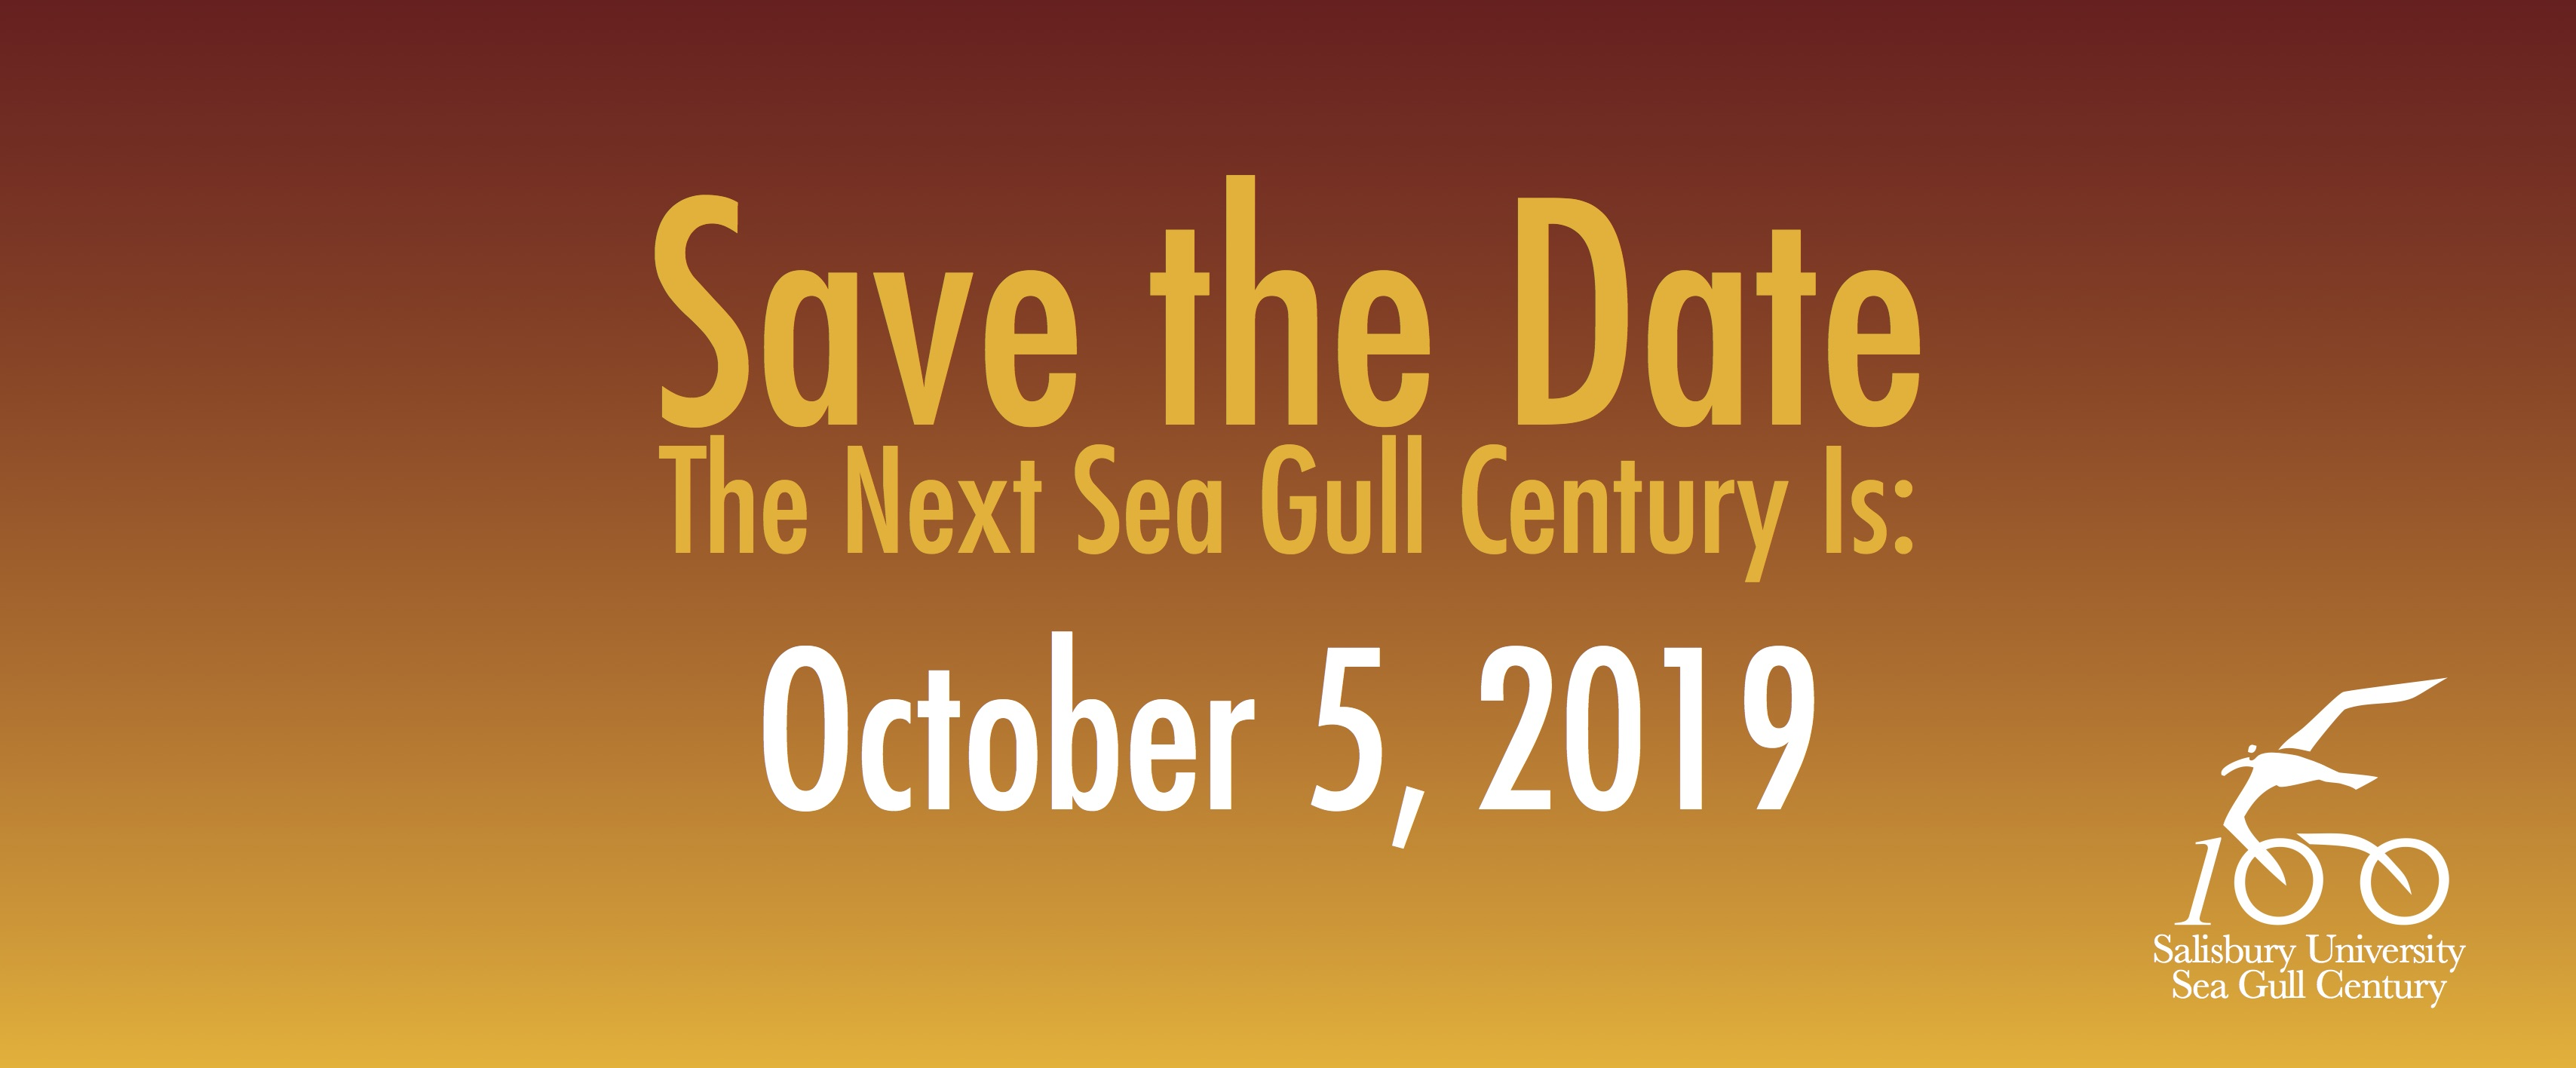 Save the Date! The next Sea Gull Century is October 5, 2019